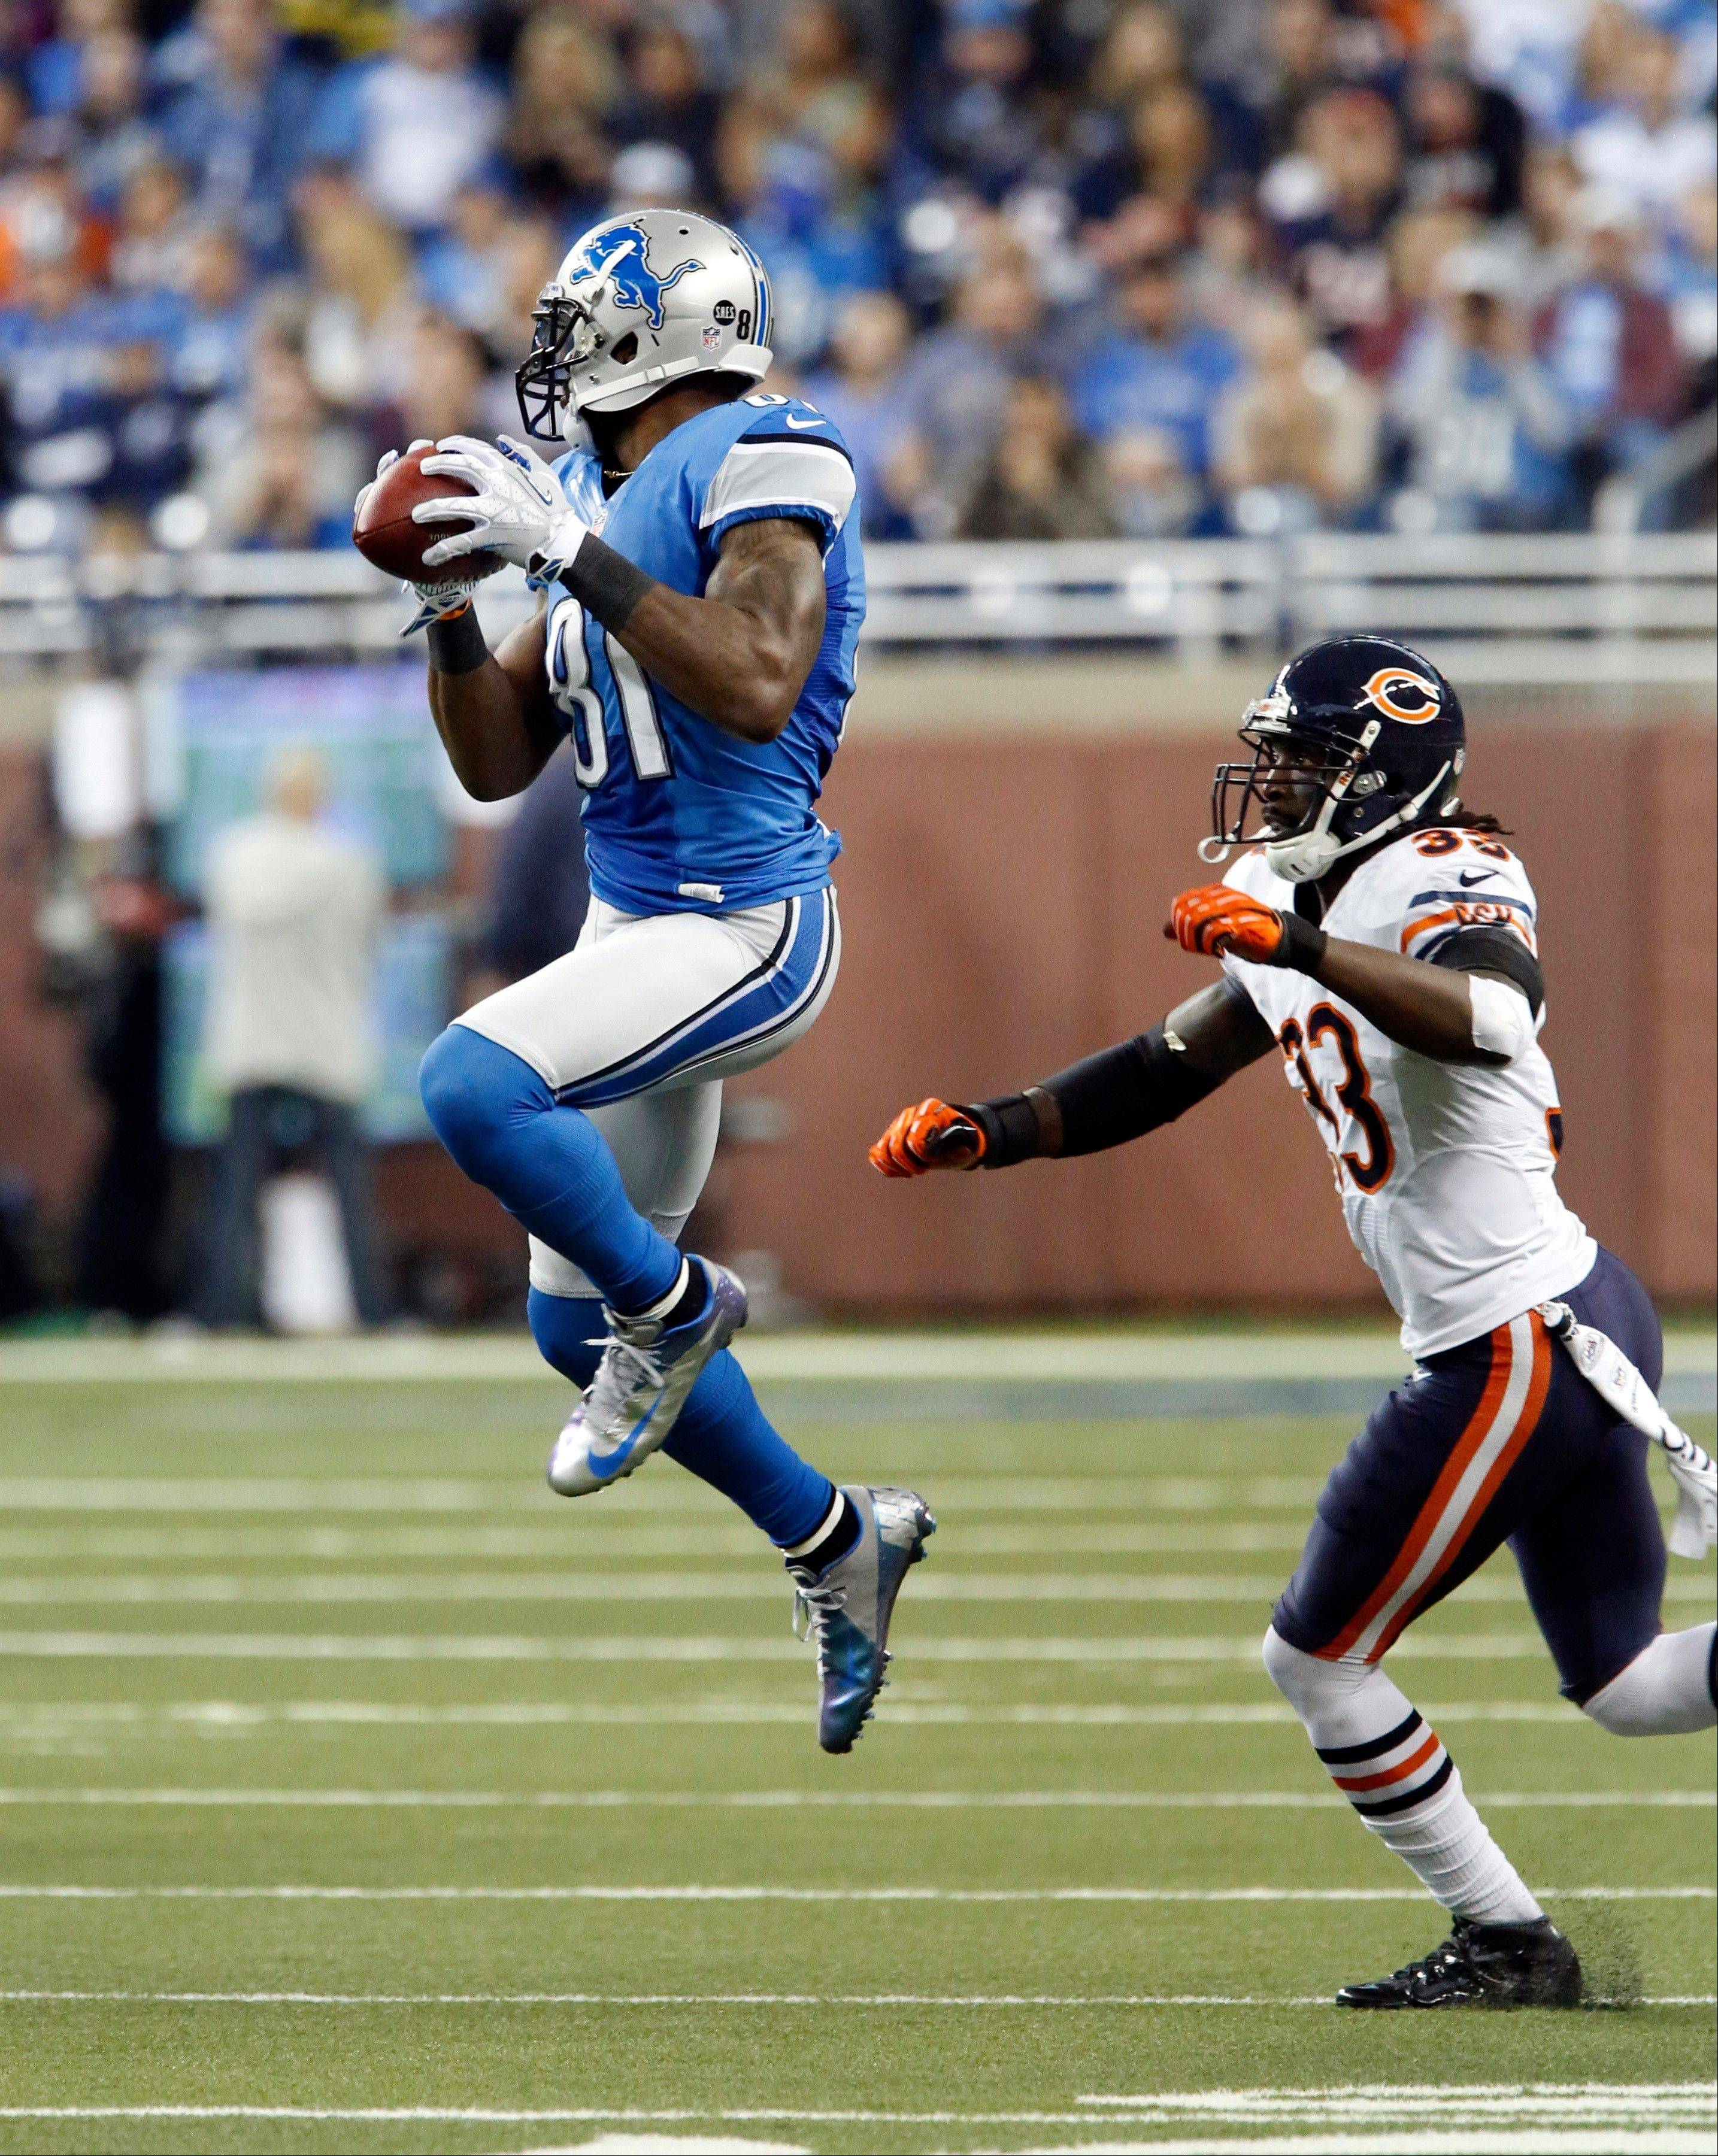 Detroit Lions wide receiver Calvin Johnson (81) makes a reception while defended by Chicago Bears cornerback Charles Tillman (33) during the first quarter.